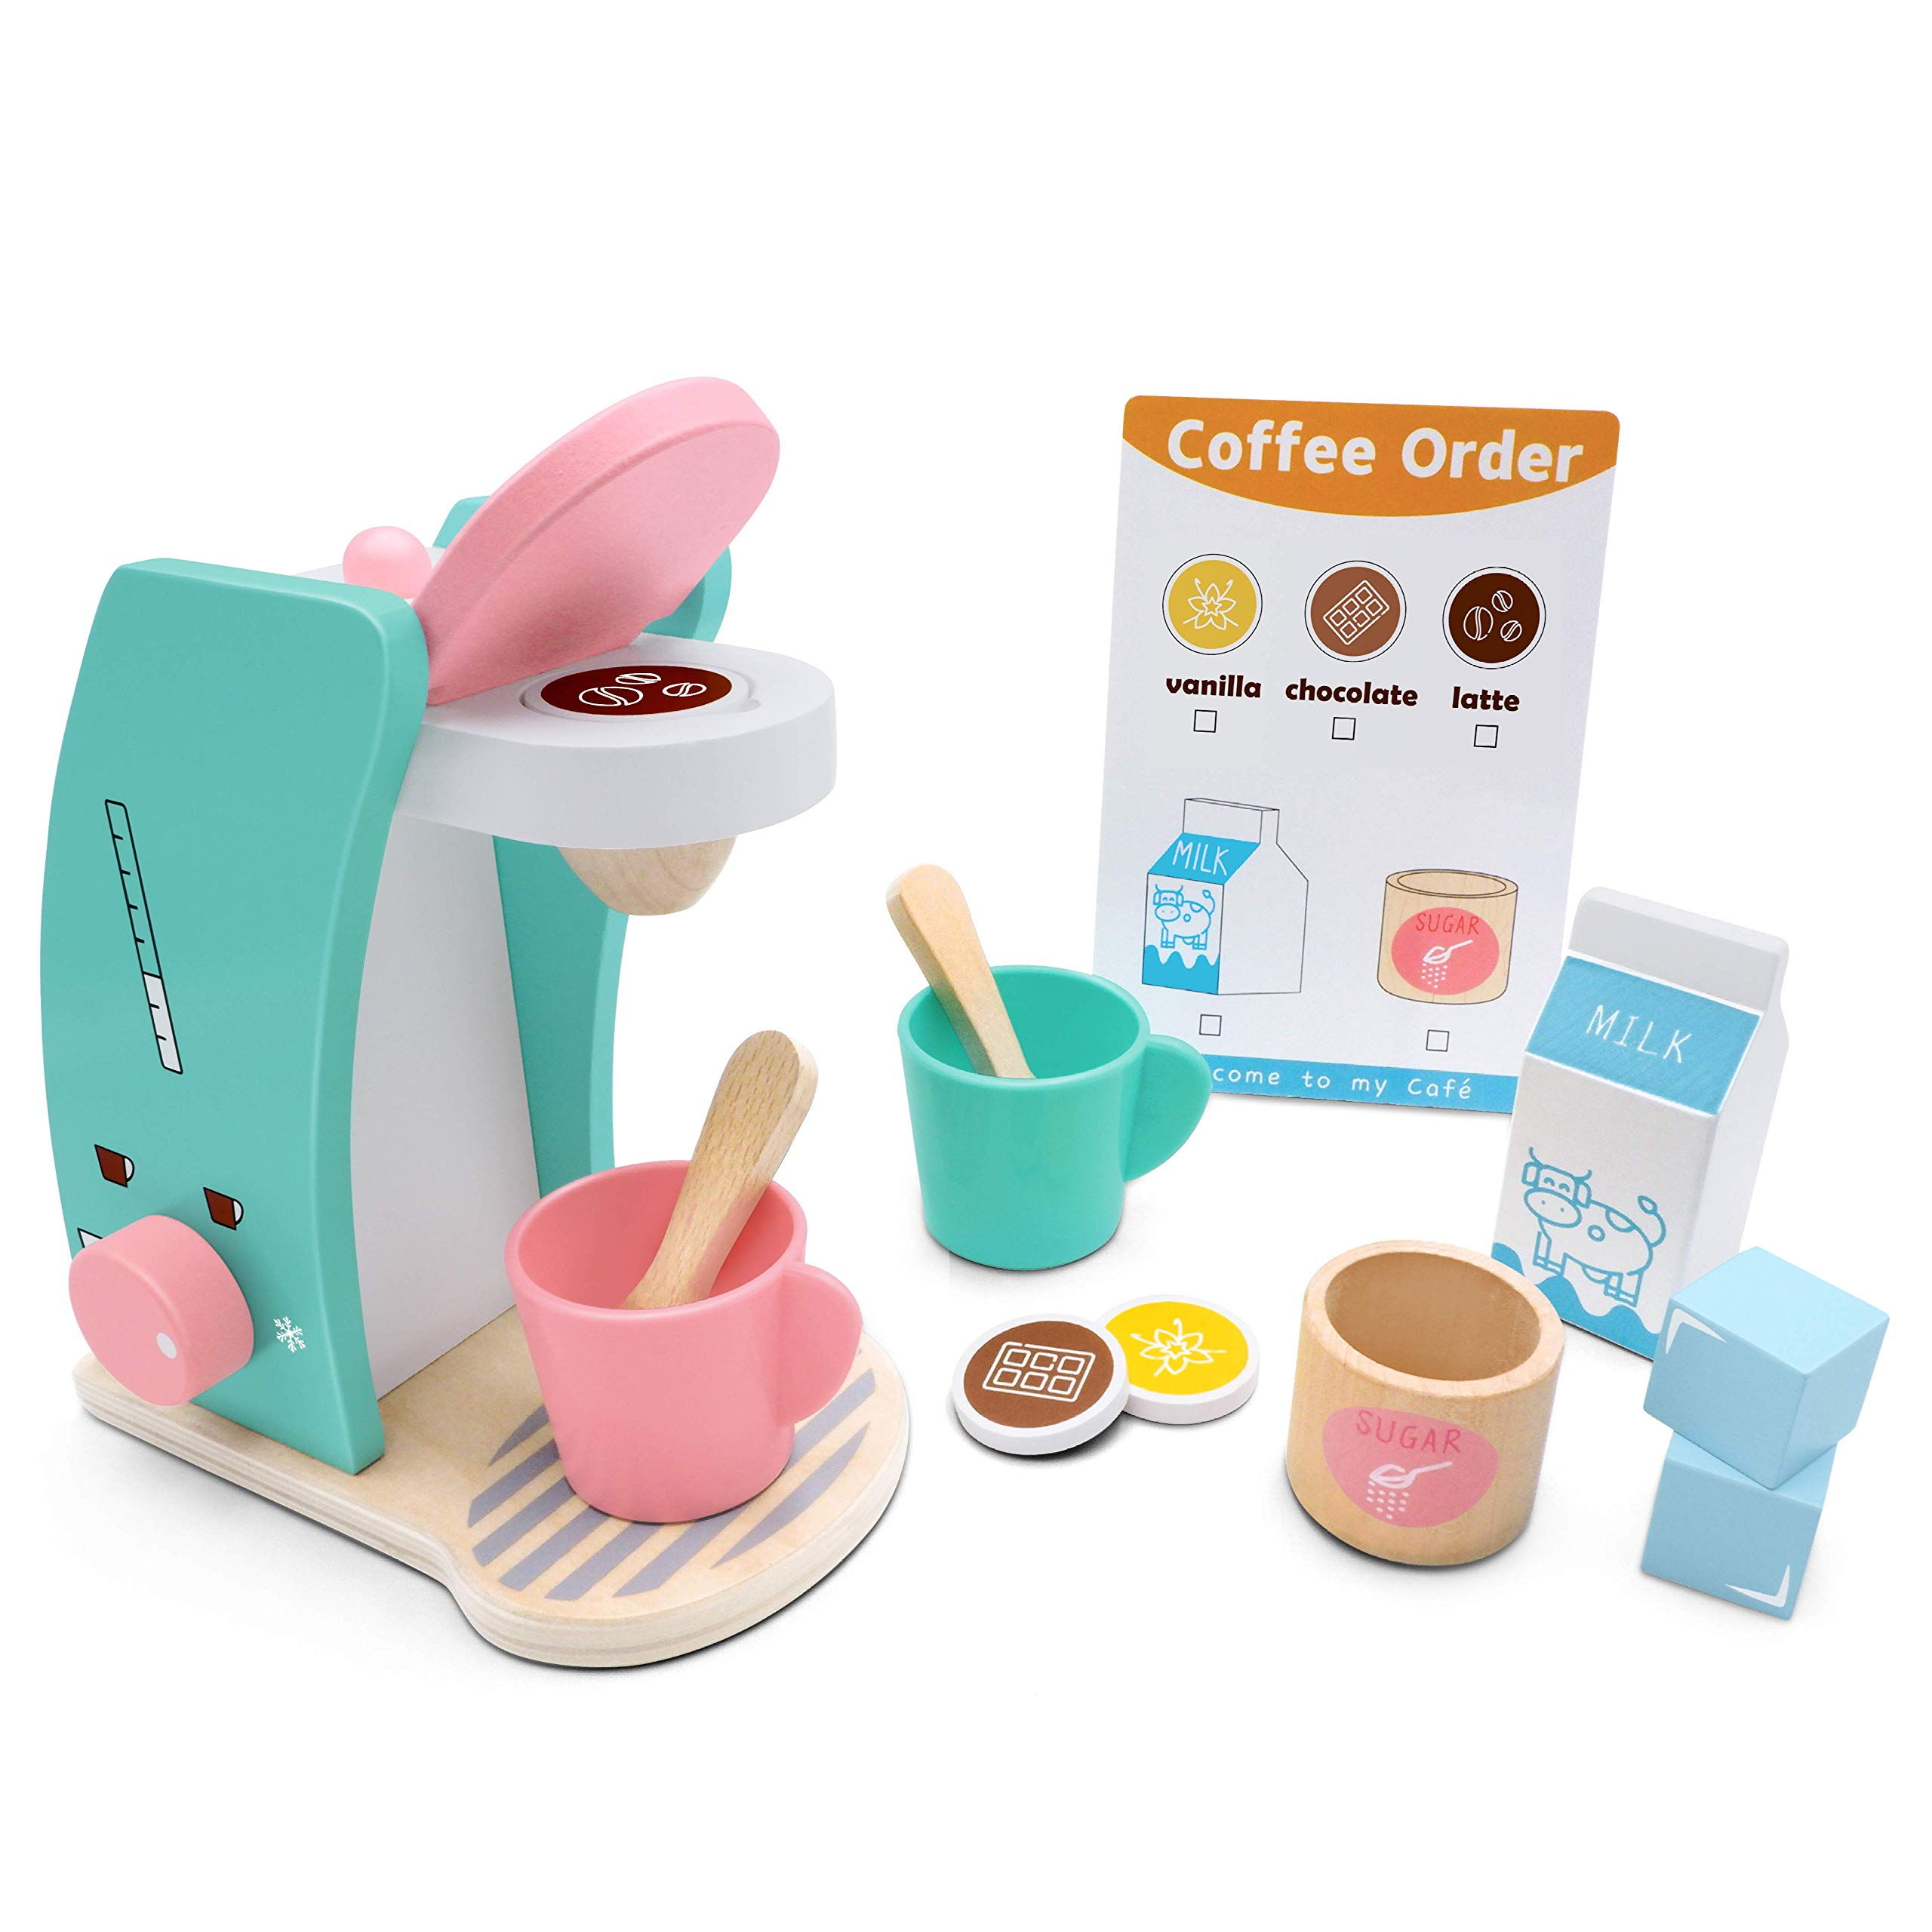 Brew & Serve Wooden Coffee Maker Set - Play Kitchen Accessories, Encourages Imaginative Play, 13 Pieces, Upgraded Toy Coffee Set for Kids-Fun and Colorful for Girls and Boys by Tiny Land